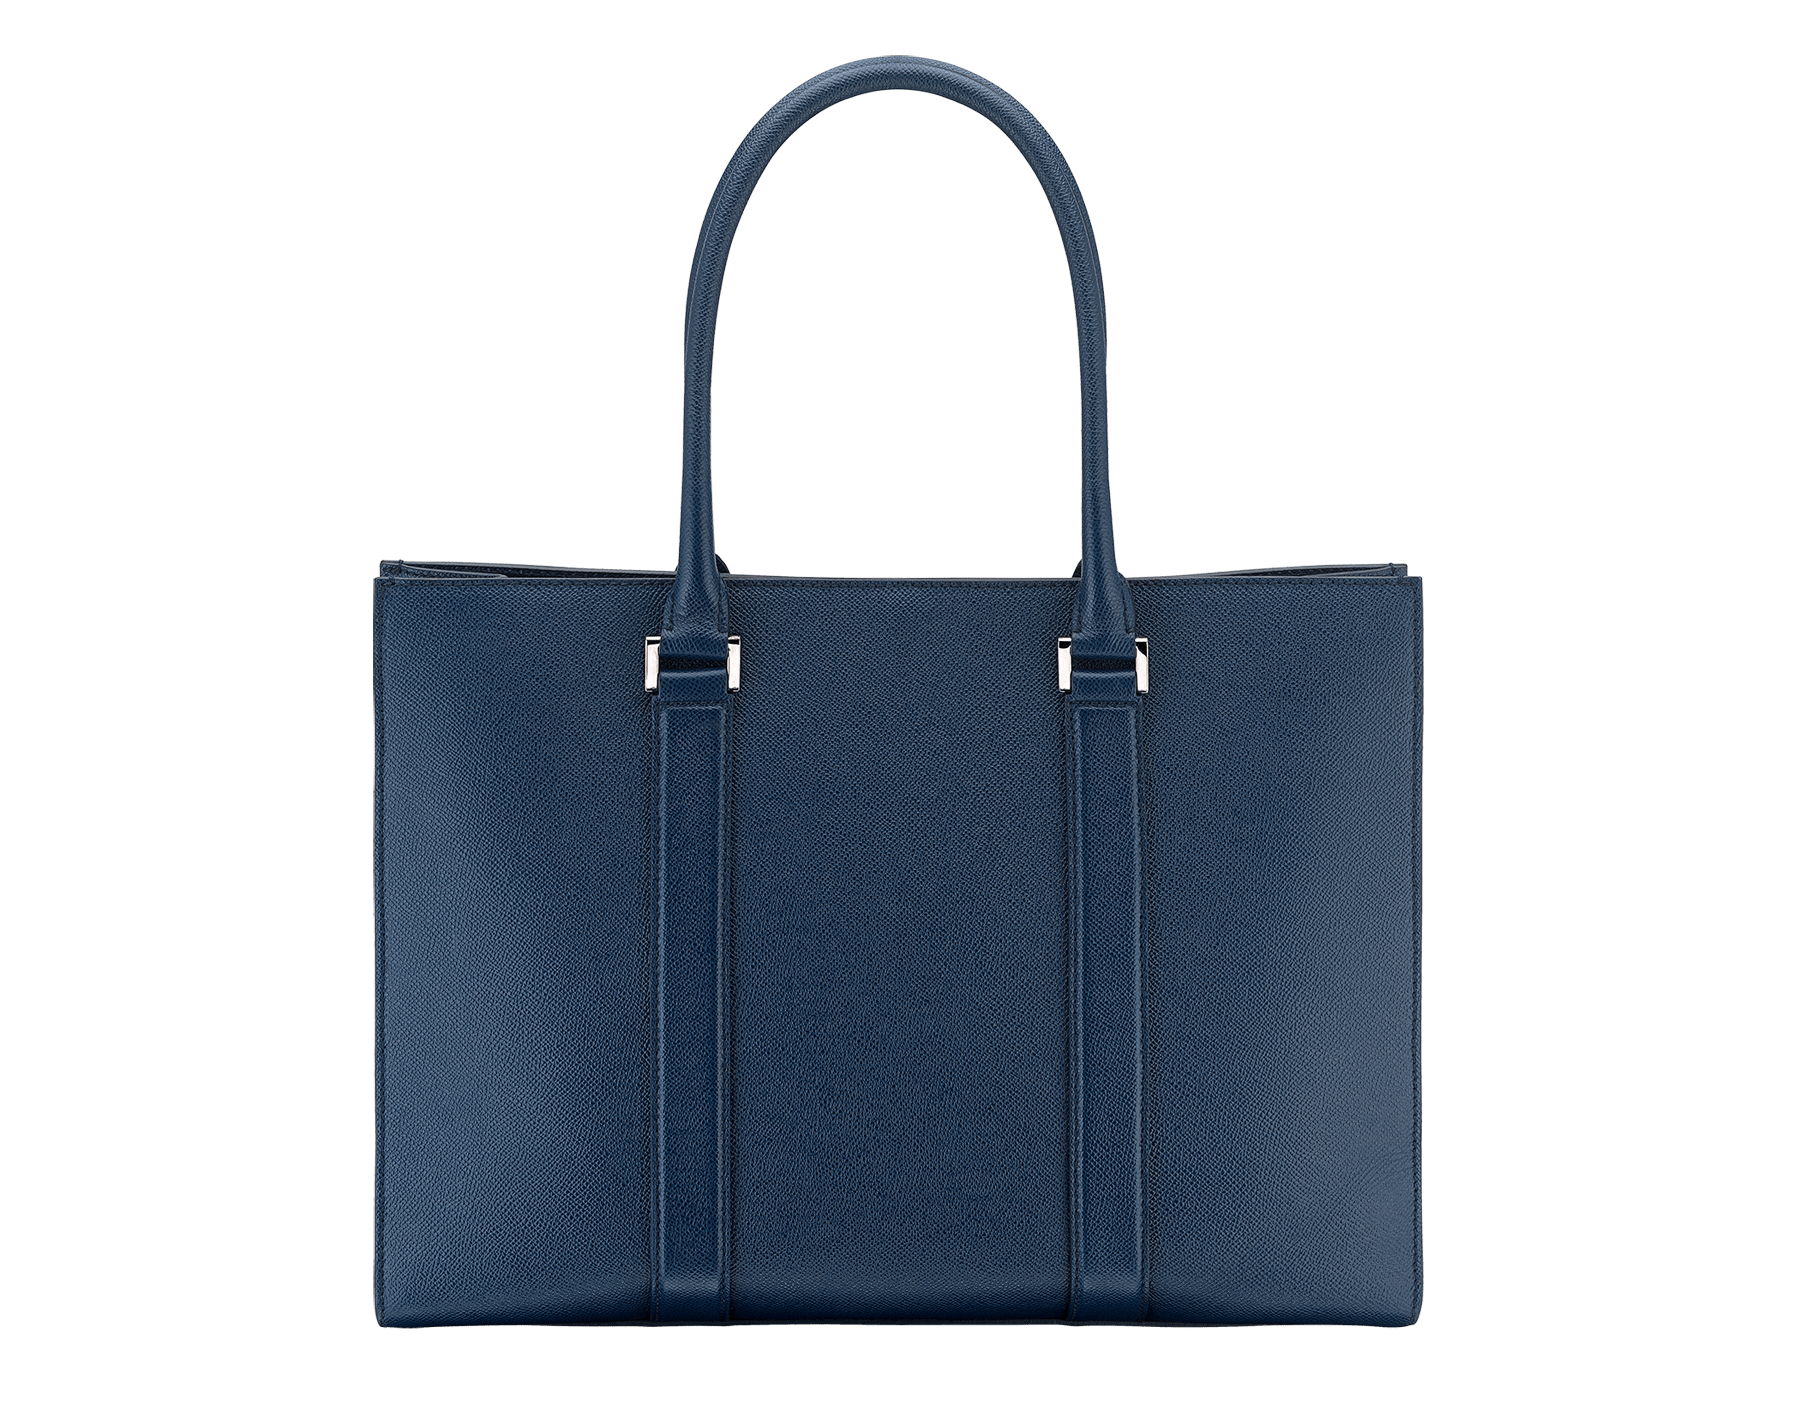 Tote bag in denim sapphire grain calf leather with brass palladium plated hardware. One zipped pocket, three open pockets and Bulgari logo metal tag inside. 39391 image 3